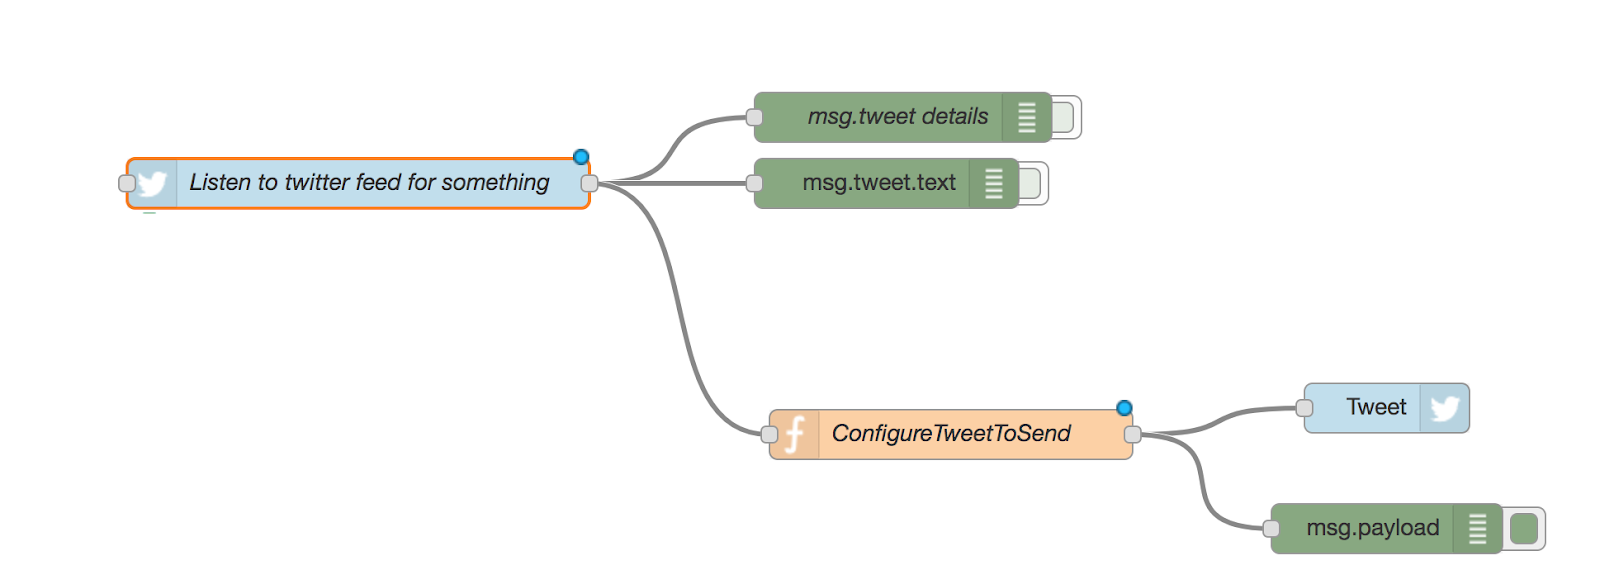 How to use node-red to interact with twitter